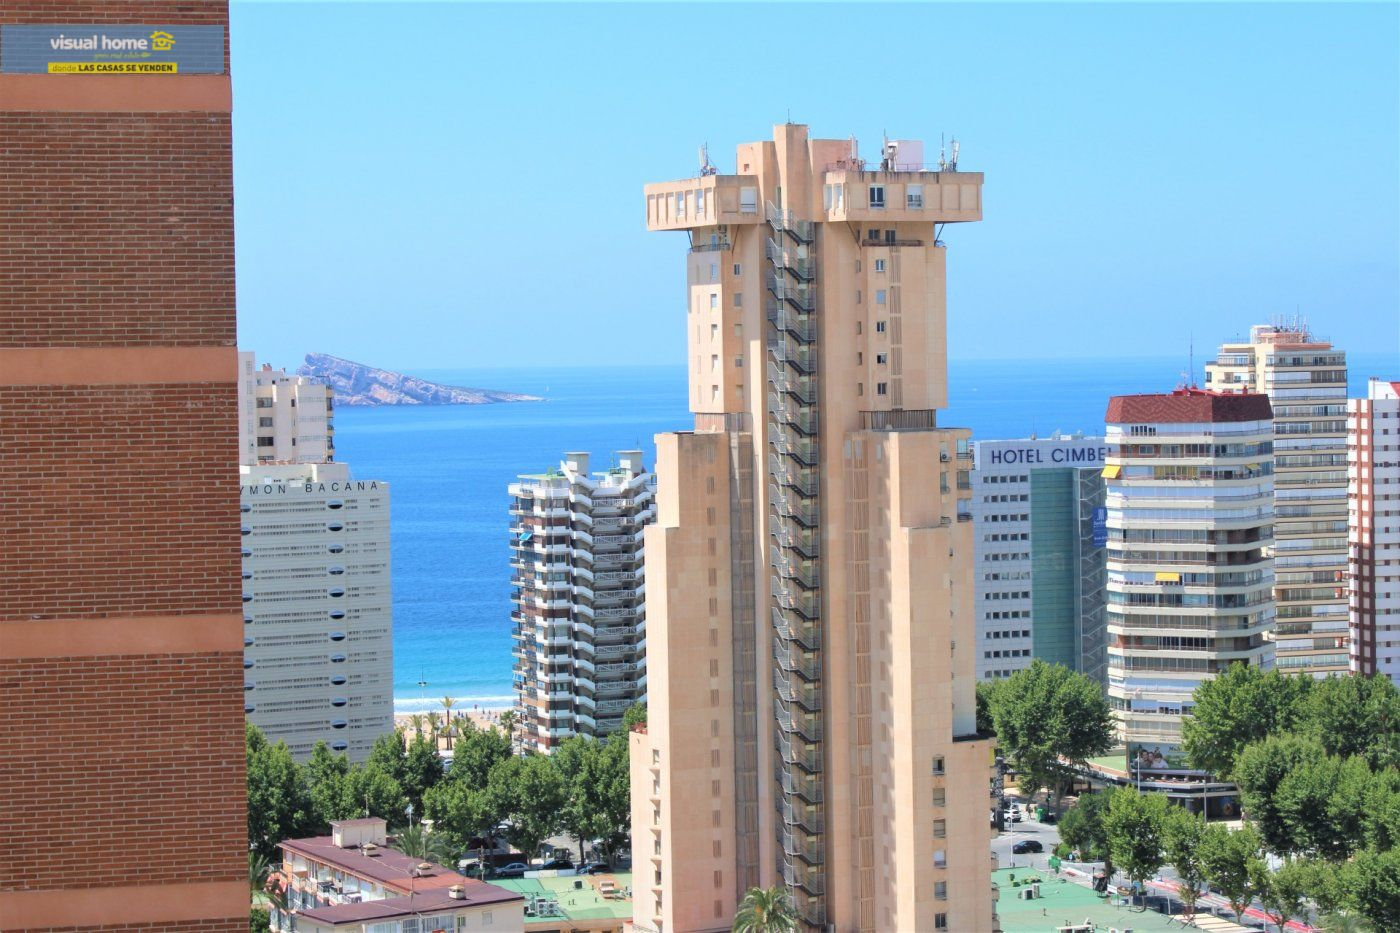 APARTAMENTO CON VISTAS AL MAR IDEAL PARA VACACIONES EN ZONA LEVANTE! PARKING Y PISCINA!!! 0